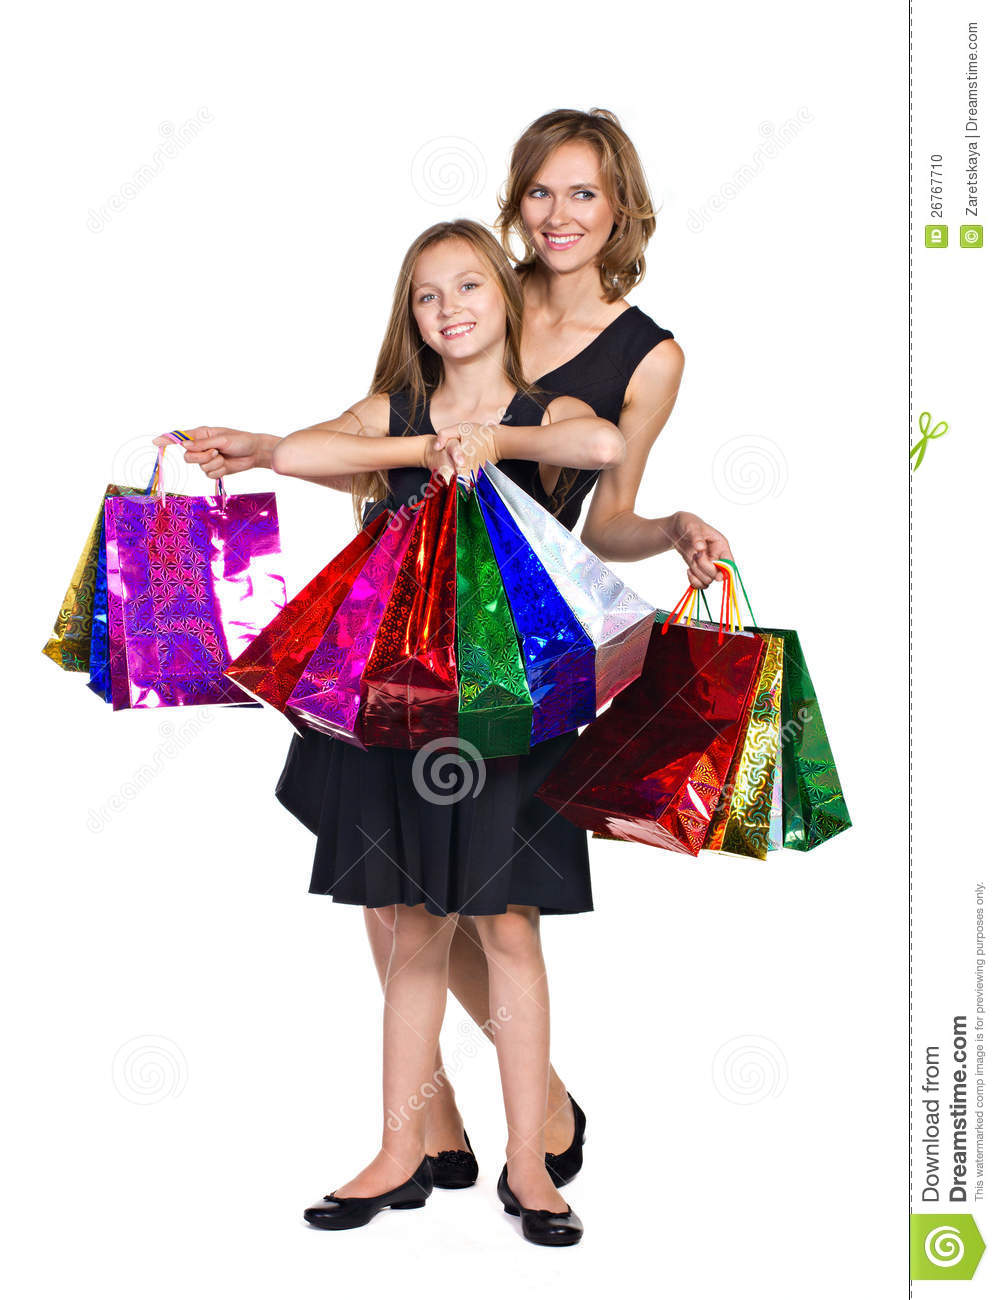 Mother and daughter with many colorful bags